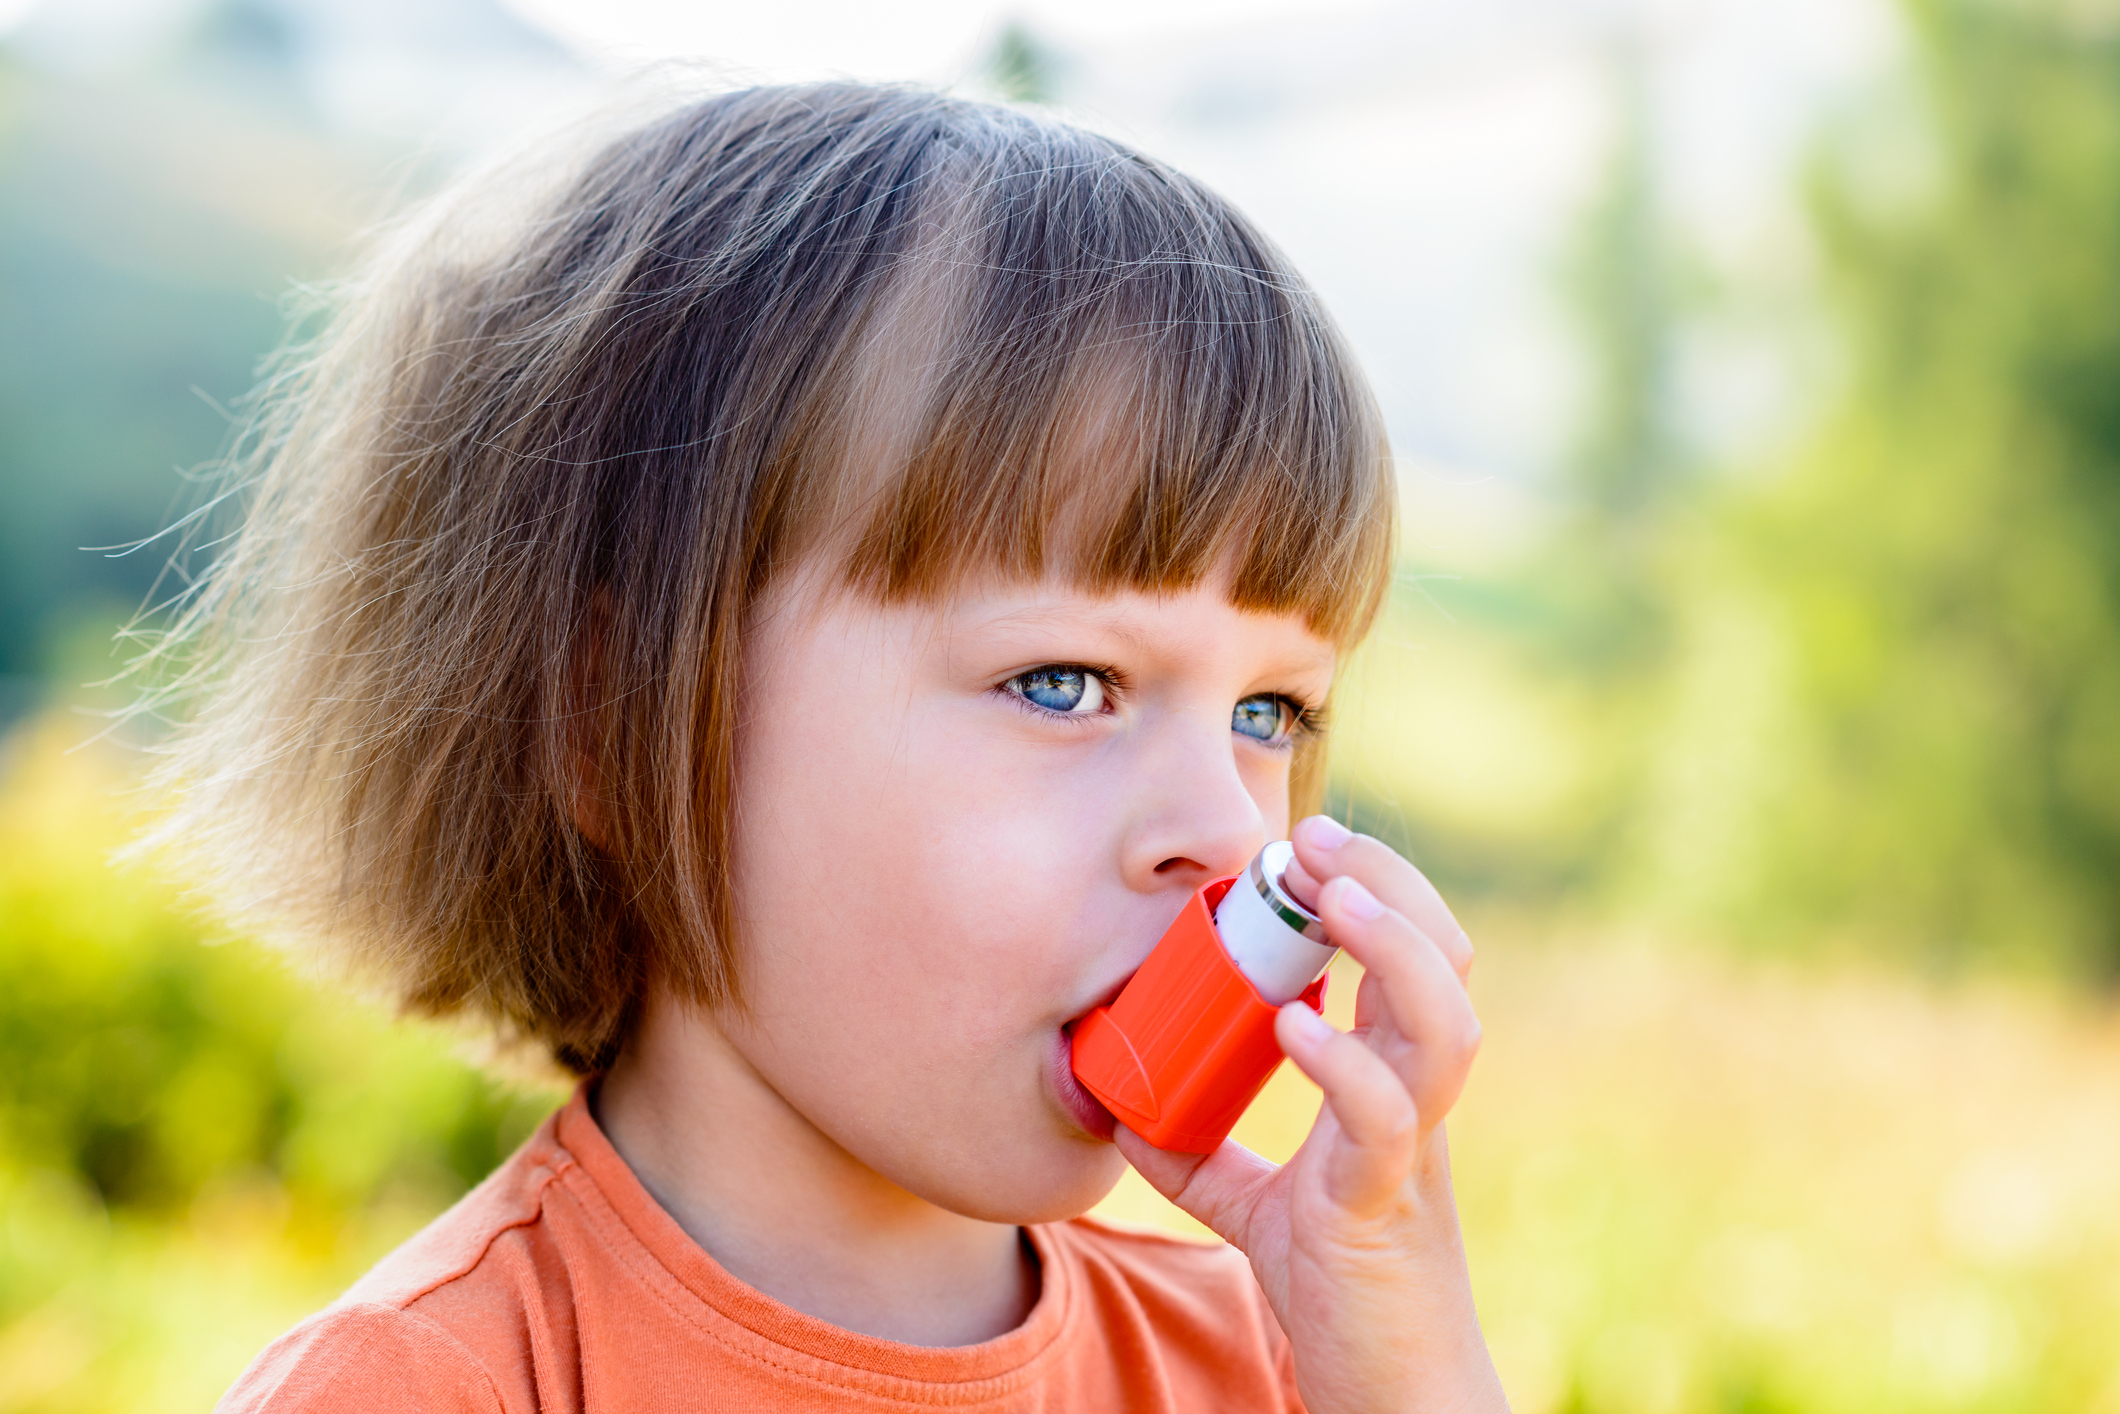 Generic photo of child using an asthma inhaler (Thinkstock/PA)